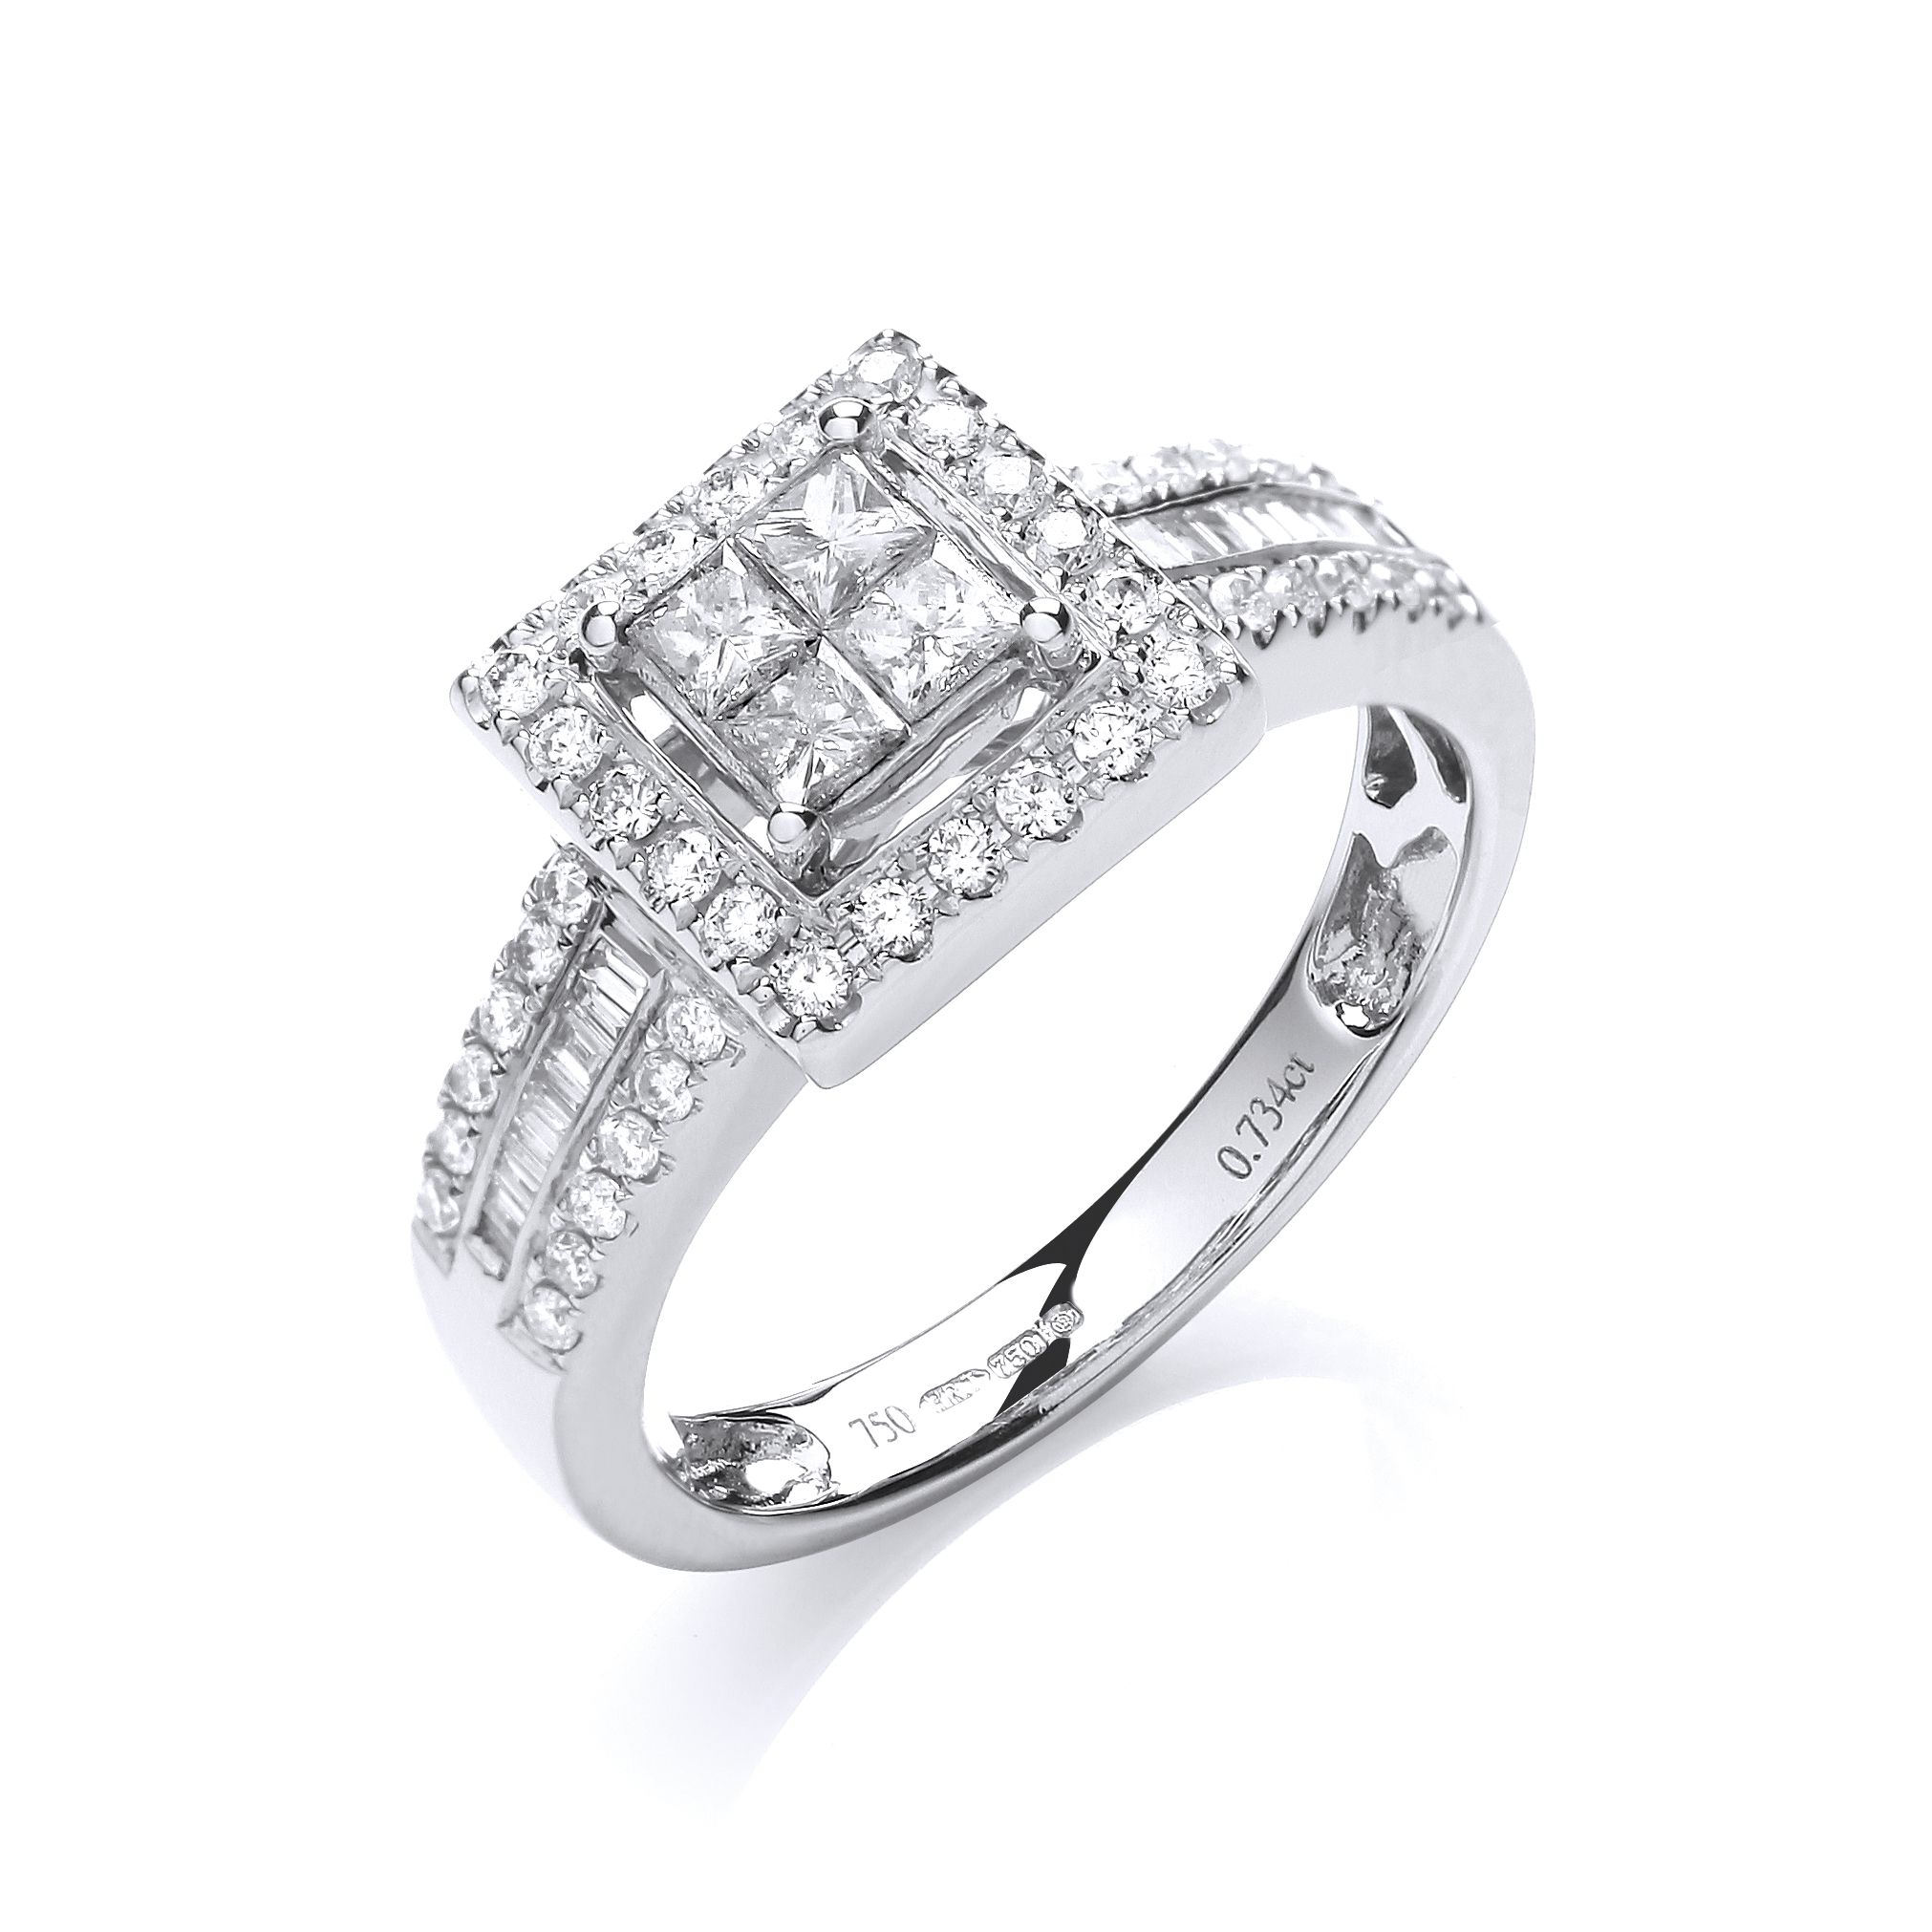 ring styles unique stone three diamond promise jlhkjyc wedding rings elegant